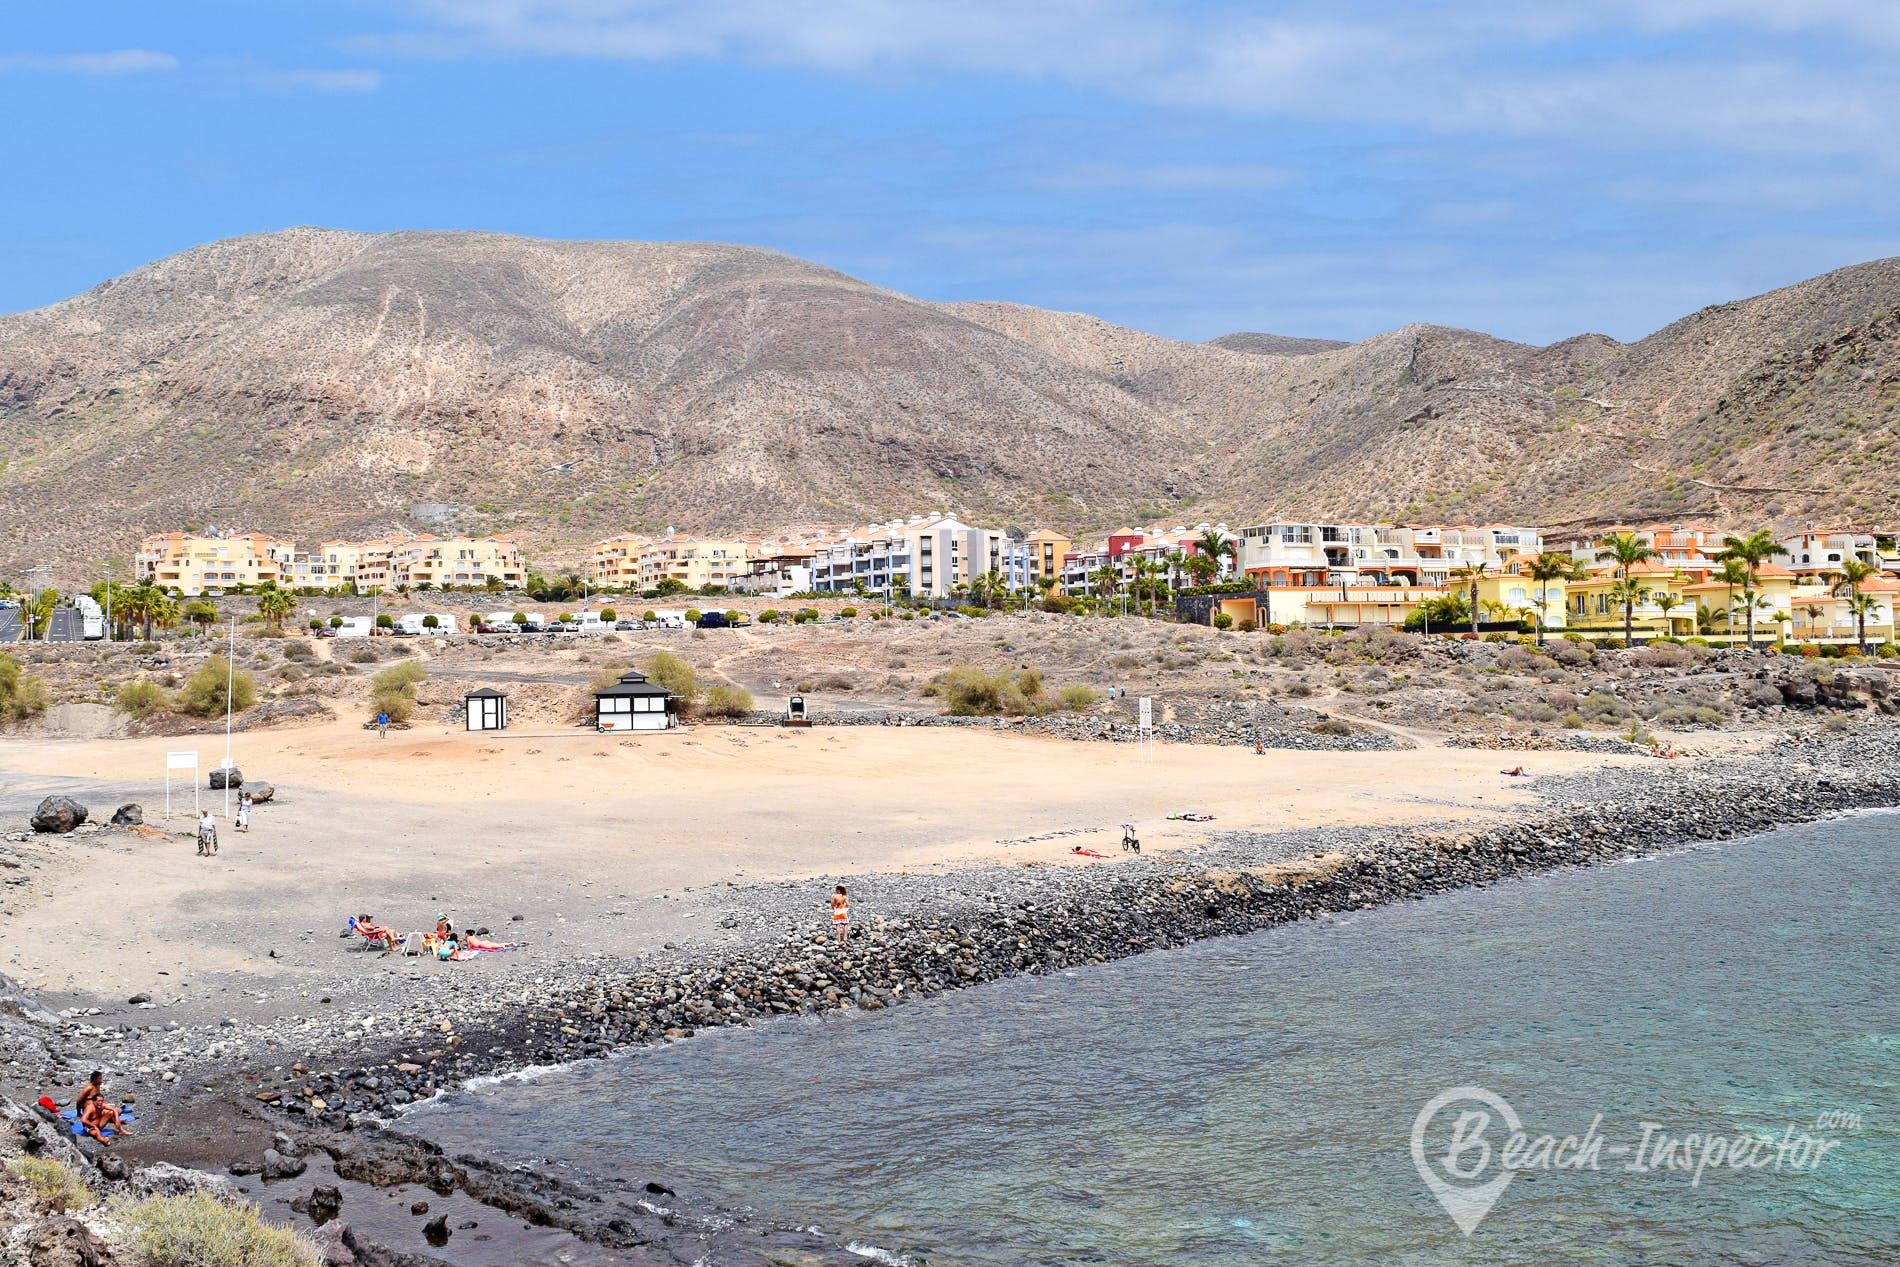 Beach Playa Callao, Tenerife, Spain